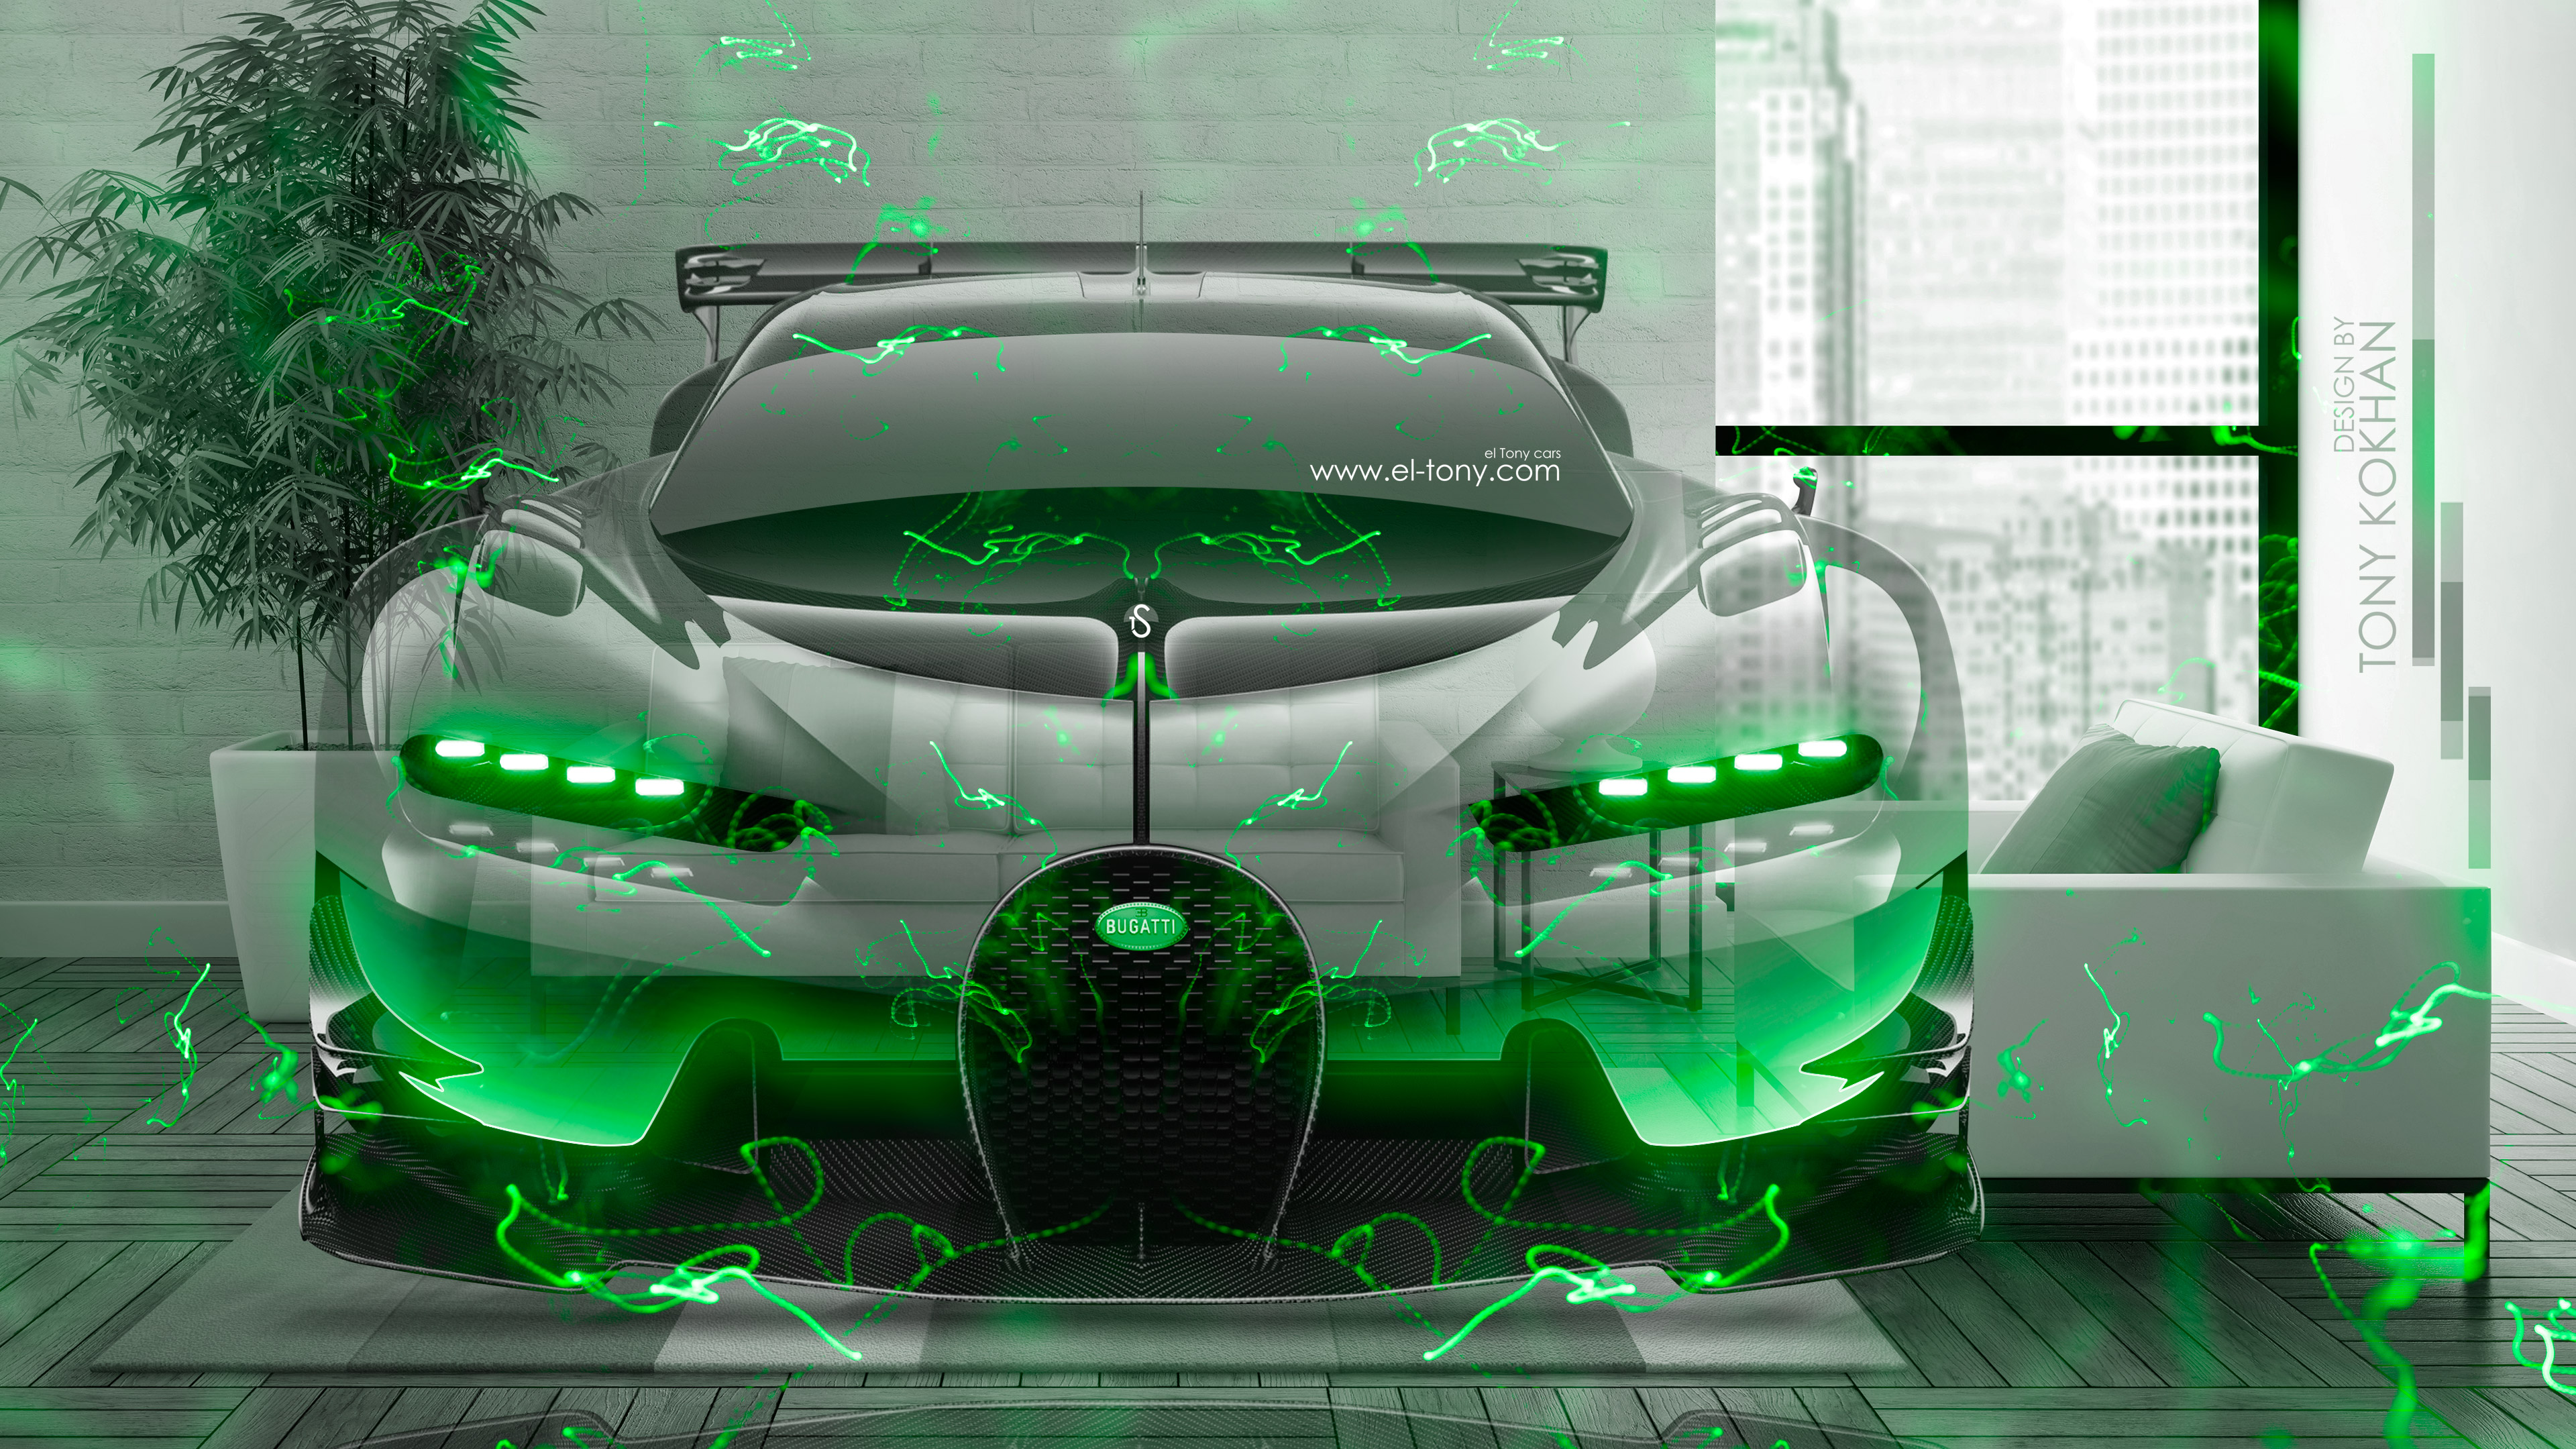 Jet Engine Hd Wallpaper Bugatti Vision Gran Turismo Super Energy Fly Home Crystal